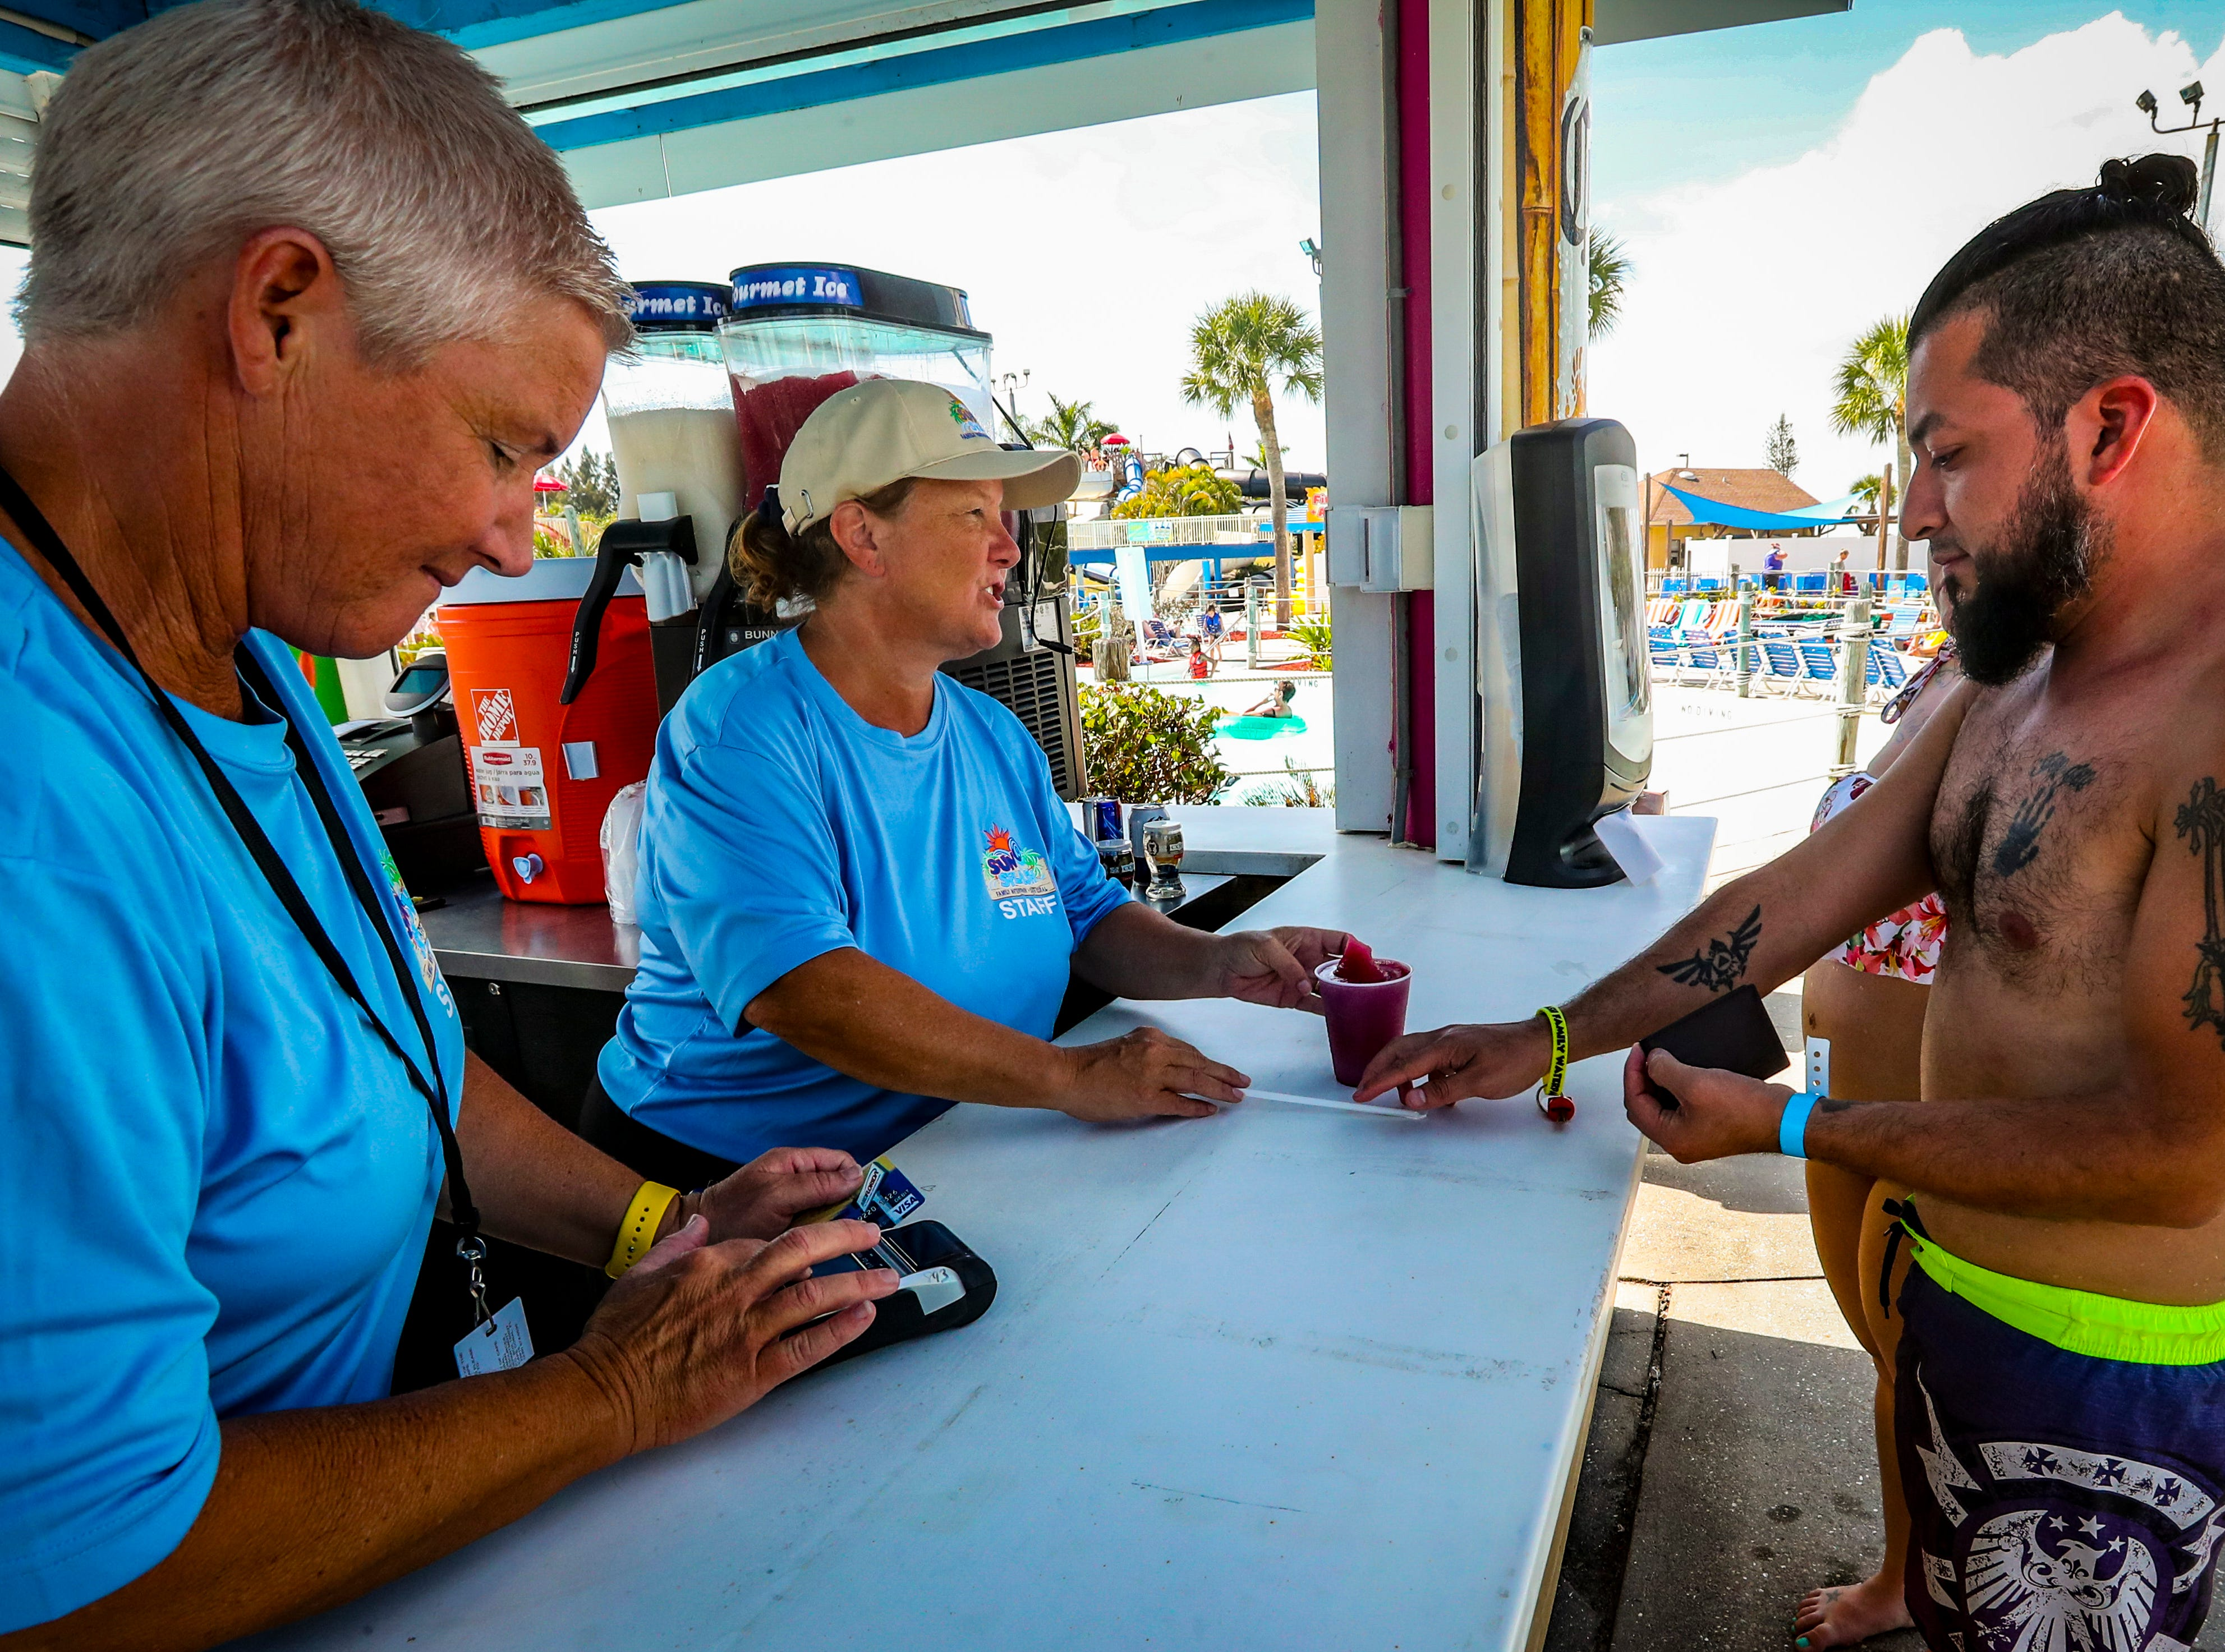 Jonathan Flores, 32, of Arcadia, reaches for his drink. He was in favor of alcohol being served at the water park and bought a wine slush. (left) Kate Gehin and Letty Garcia serve him. Sun Splash is opening for it's 2019 season - the first season that will include sales of beer, wine and wine smoothies. Blue wrist bands are handed out after showing your license. The wrist band has two tickets on it. Each person is allowed two drinks. The wine slushes were are popular item to drink.